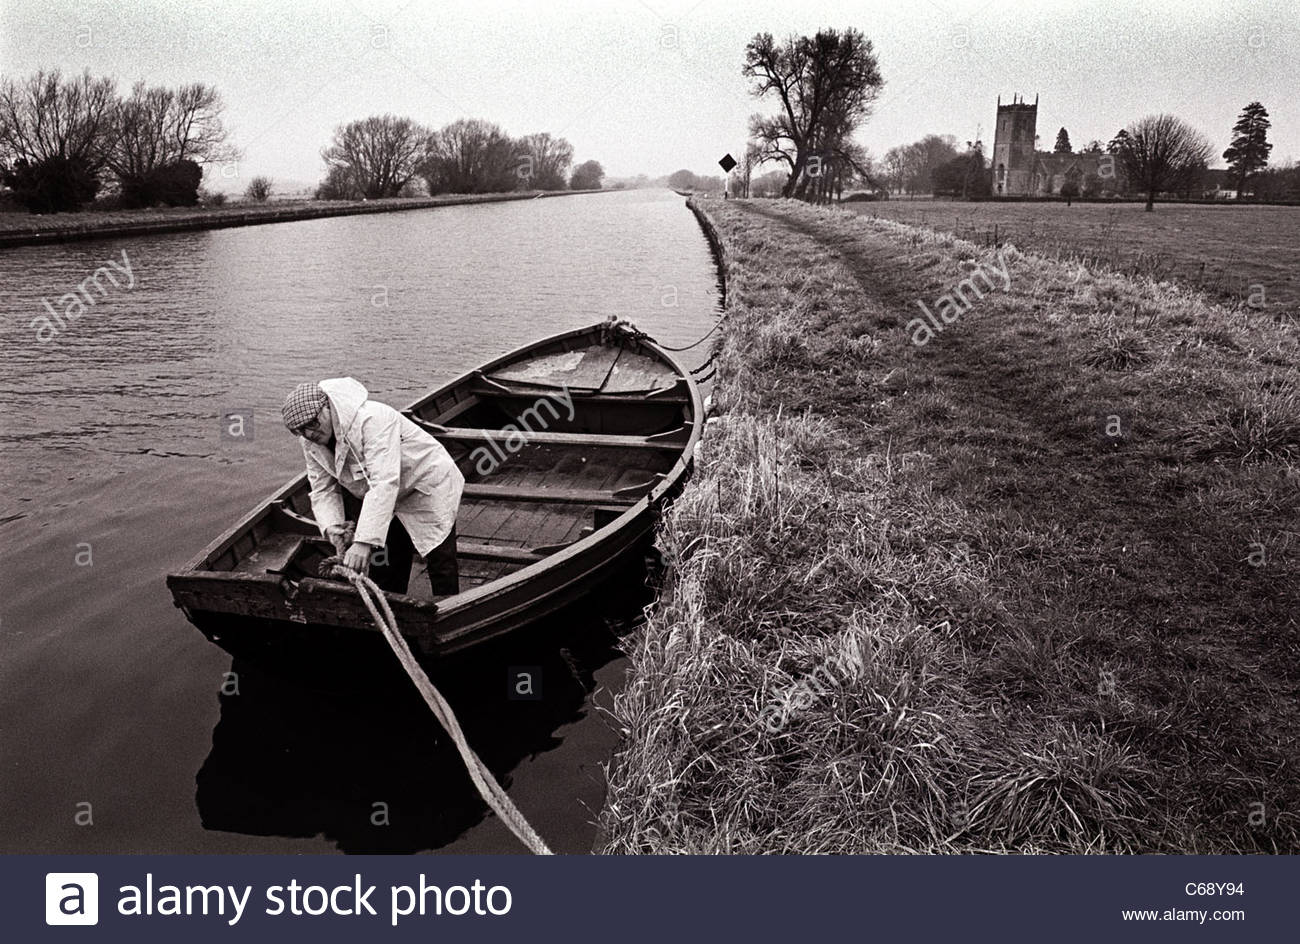 Boatman ties up his boat on the Gloucester and Sharpness Canal - Stock Image